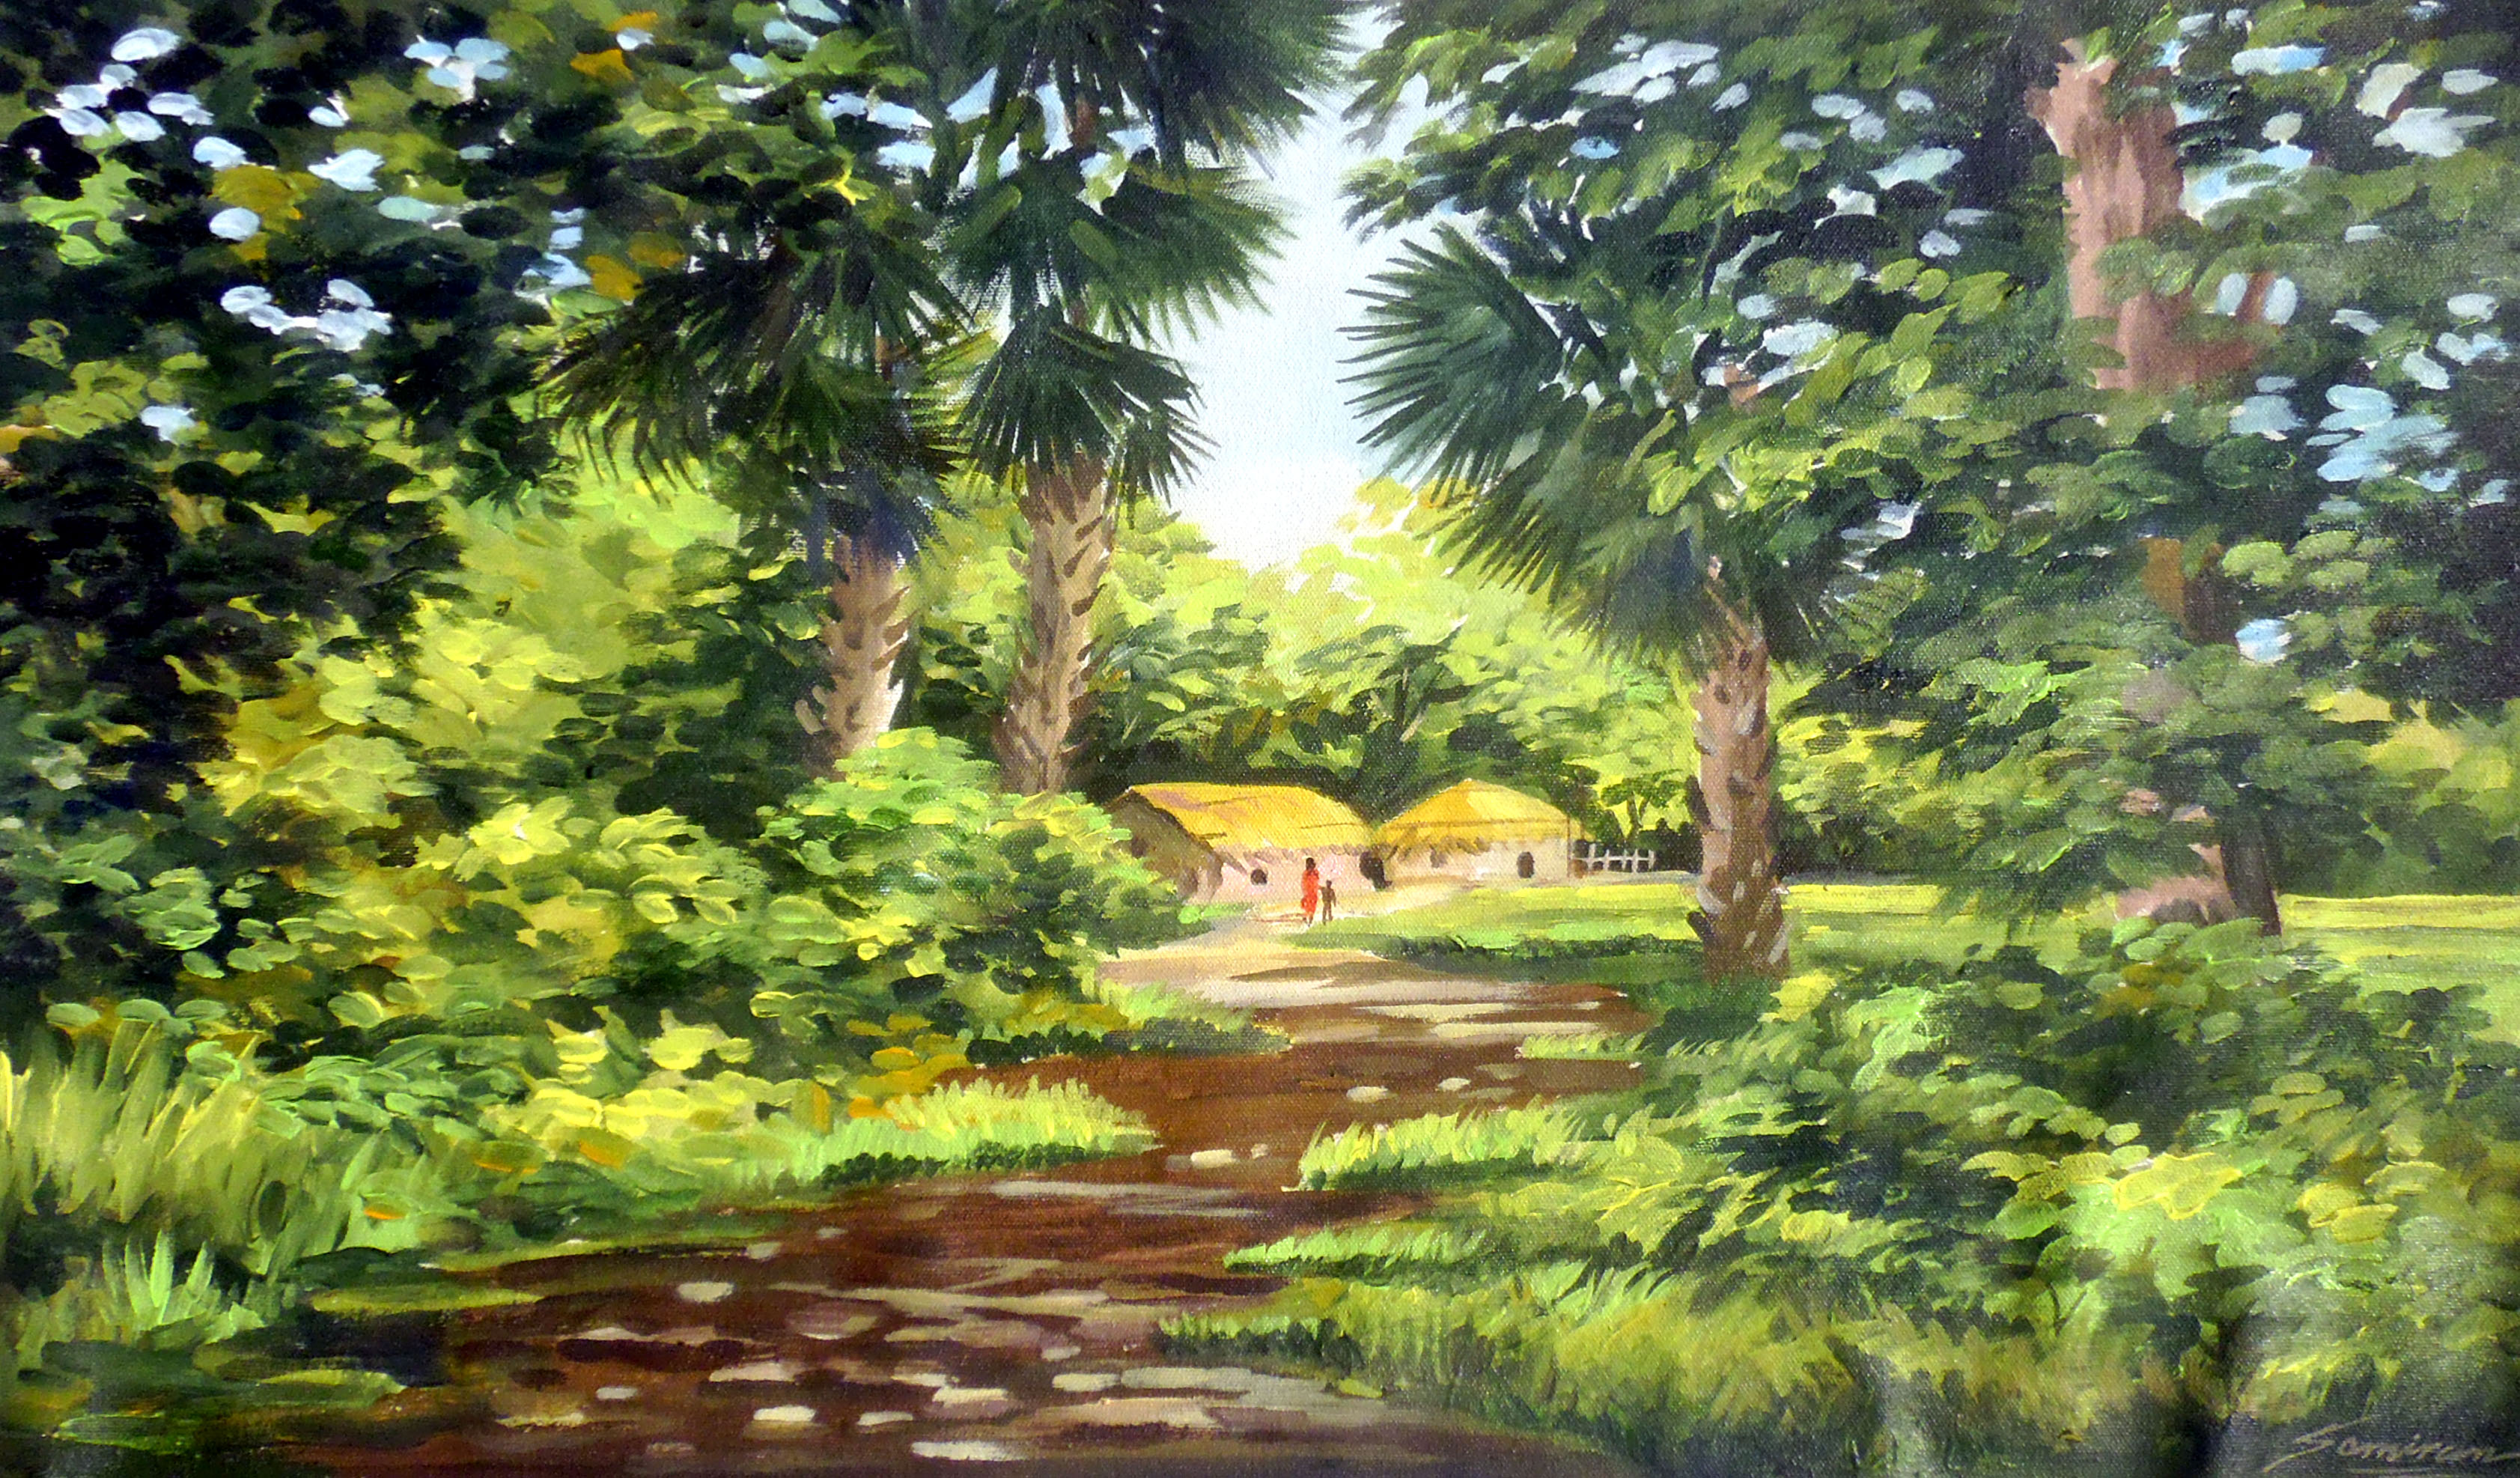 Buy Painting Beauty Of Bengal Village - Acrylic On Canvas ...Beautiful Indian Village Paintings